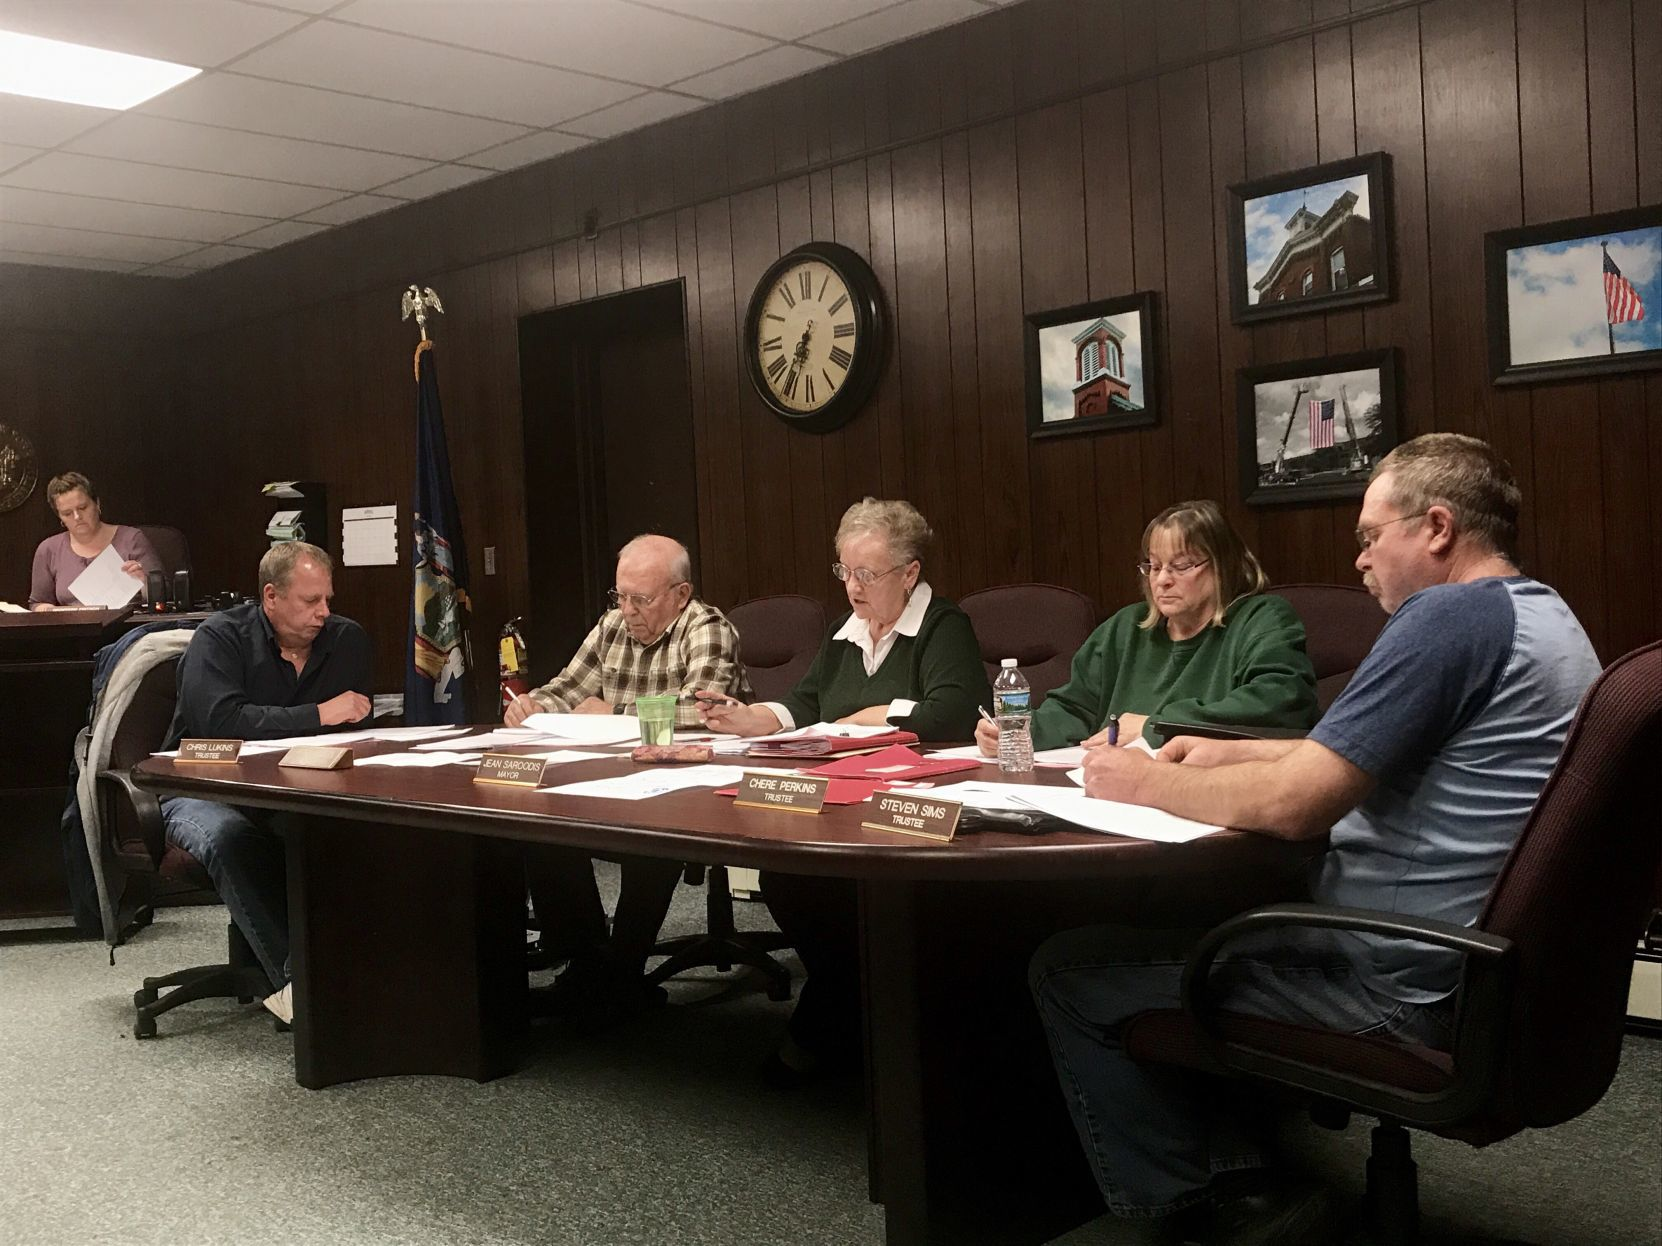 Weedsport again fires DPW employee who filed harassment claim